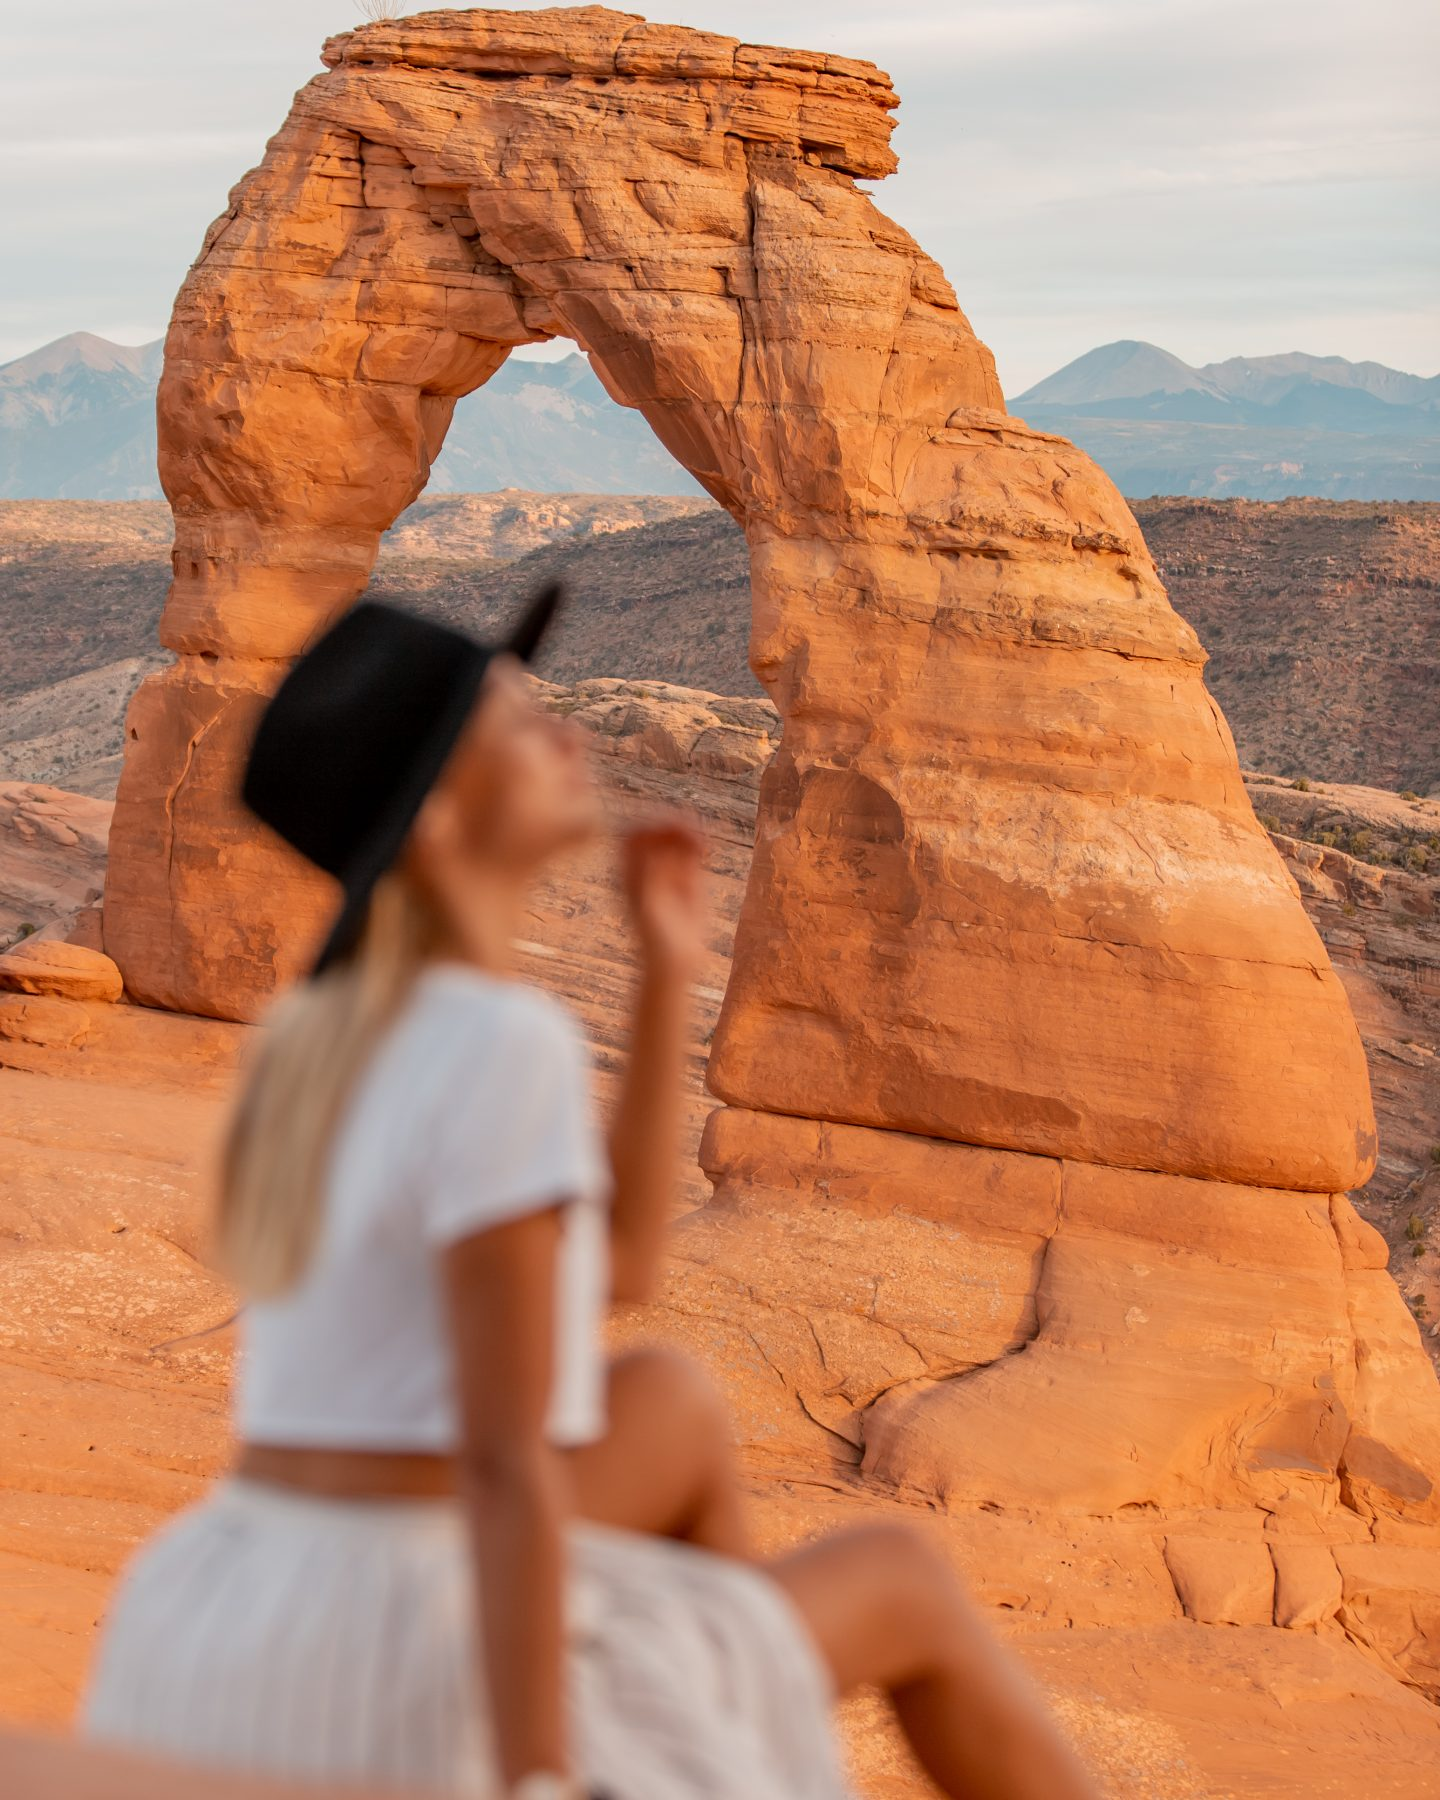 Woman at Delicate Arch in Arches National Park near Moab, Utah